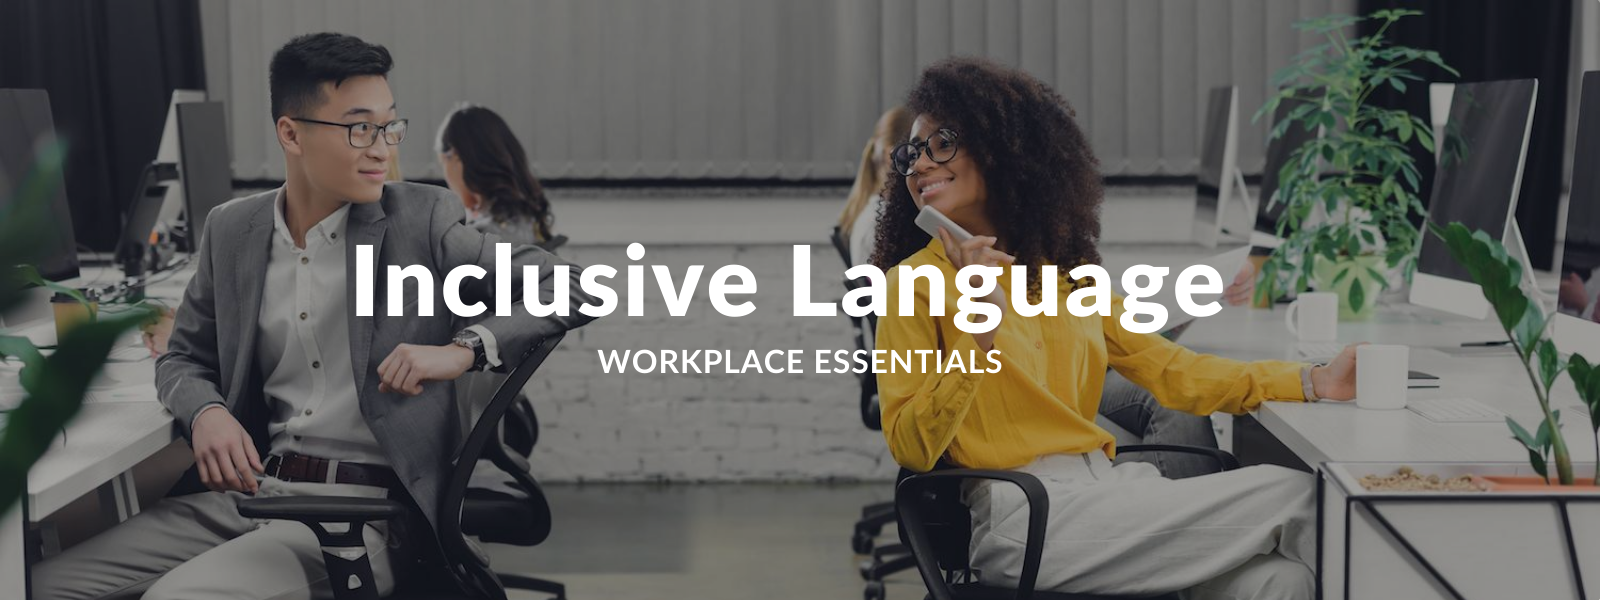 Implementing Inclusive Language in the Workplace